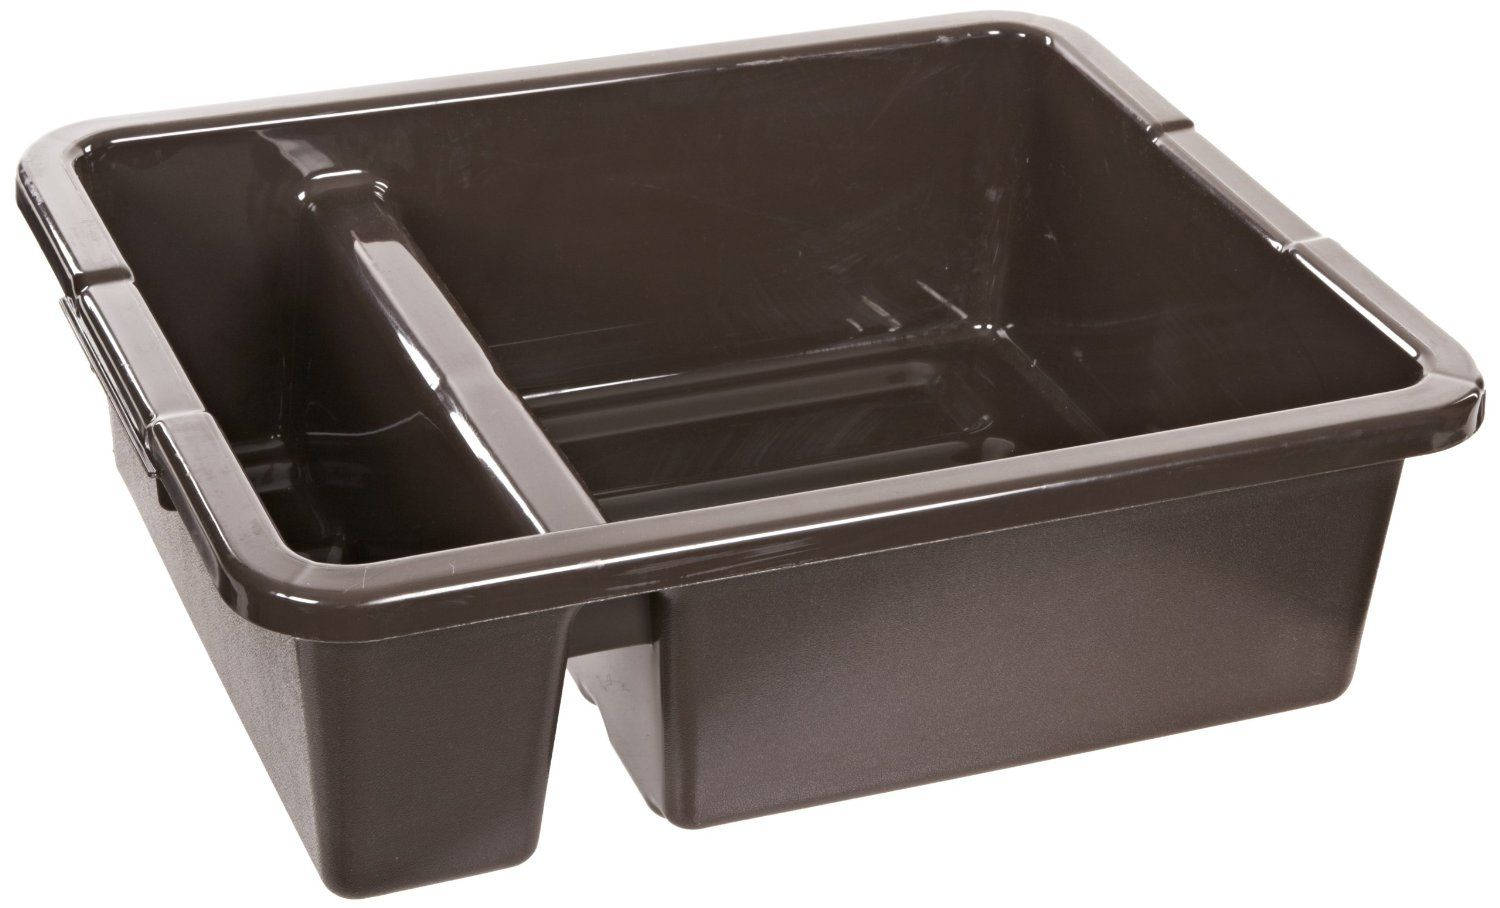 Bussing Tray Google Search Rubbermaid Commercial Products Utility Box Three Compartment Sink